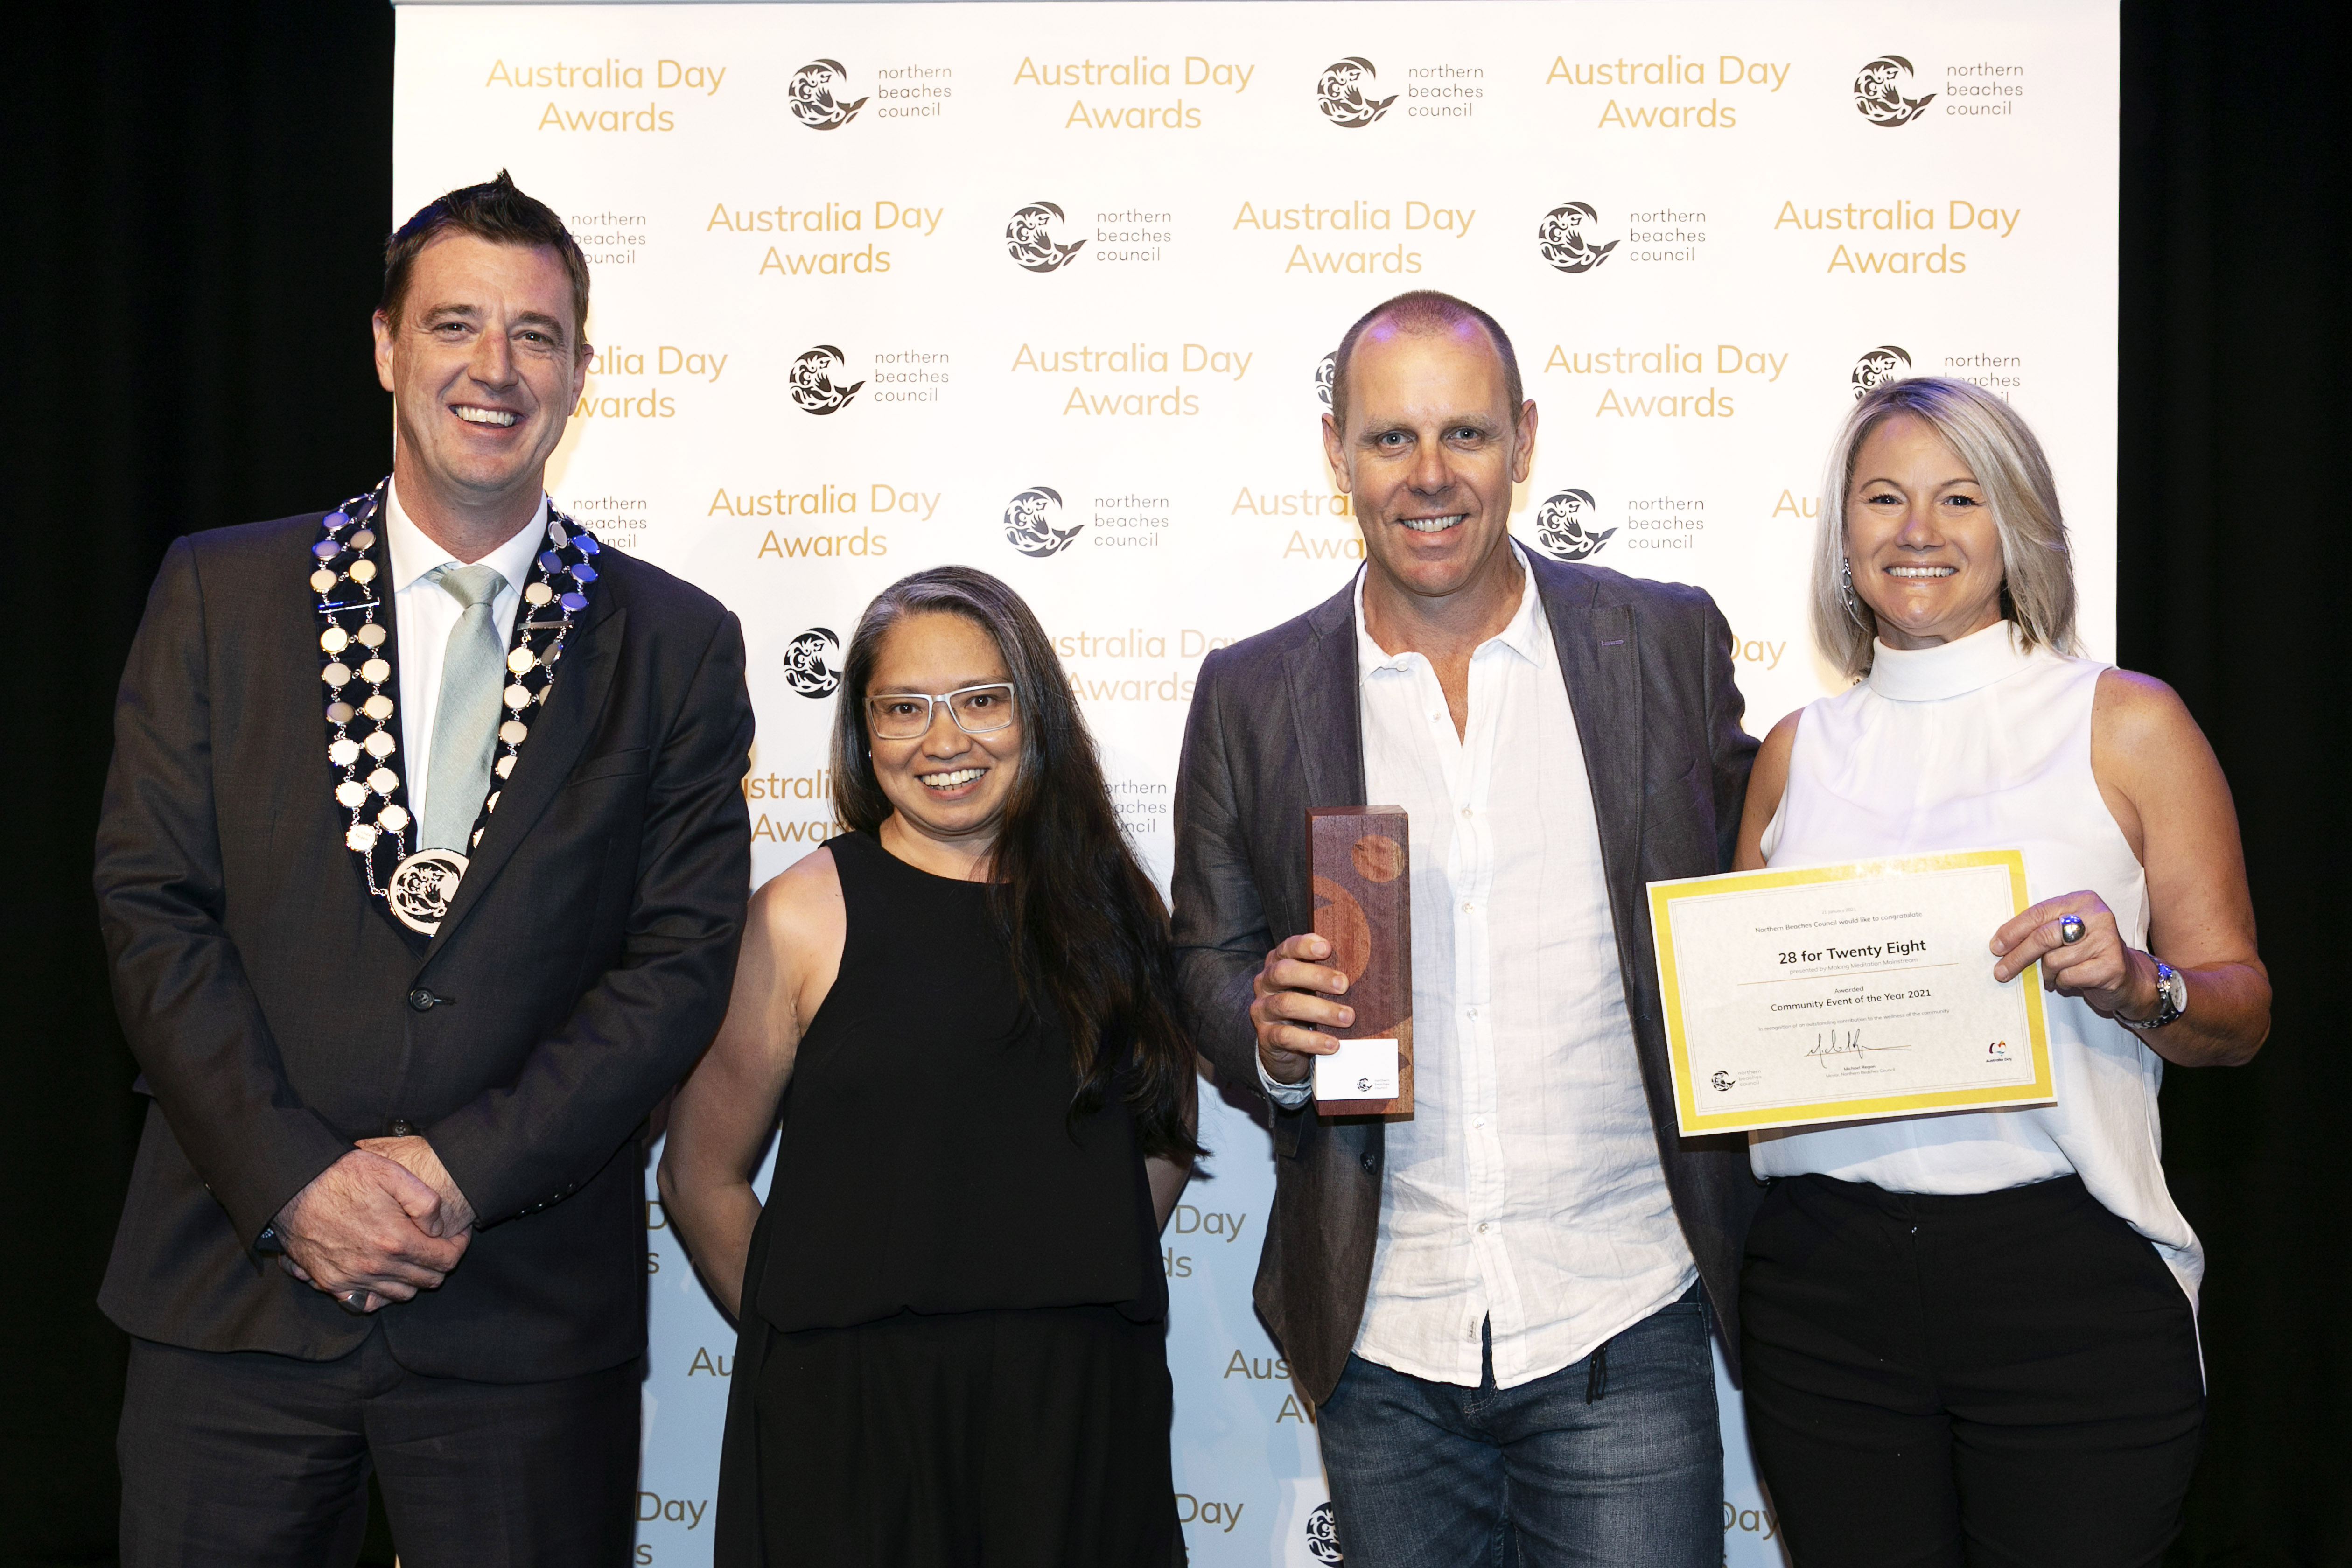 MAKING MEDITATION MAINSTREAM WINS AUSTRALIA DAY - 'COMMUNITY EVENT OF THE YEAR 2021' Image